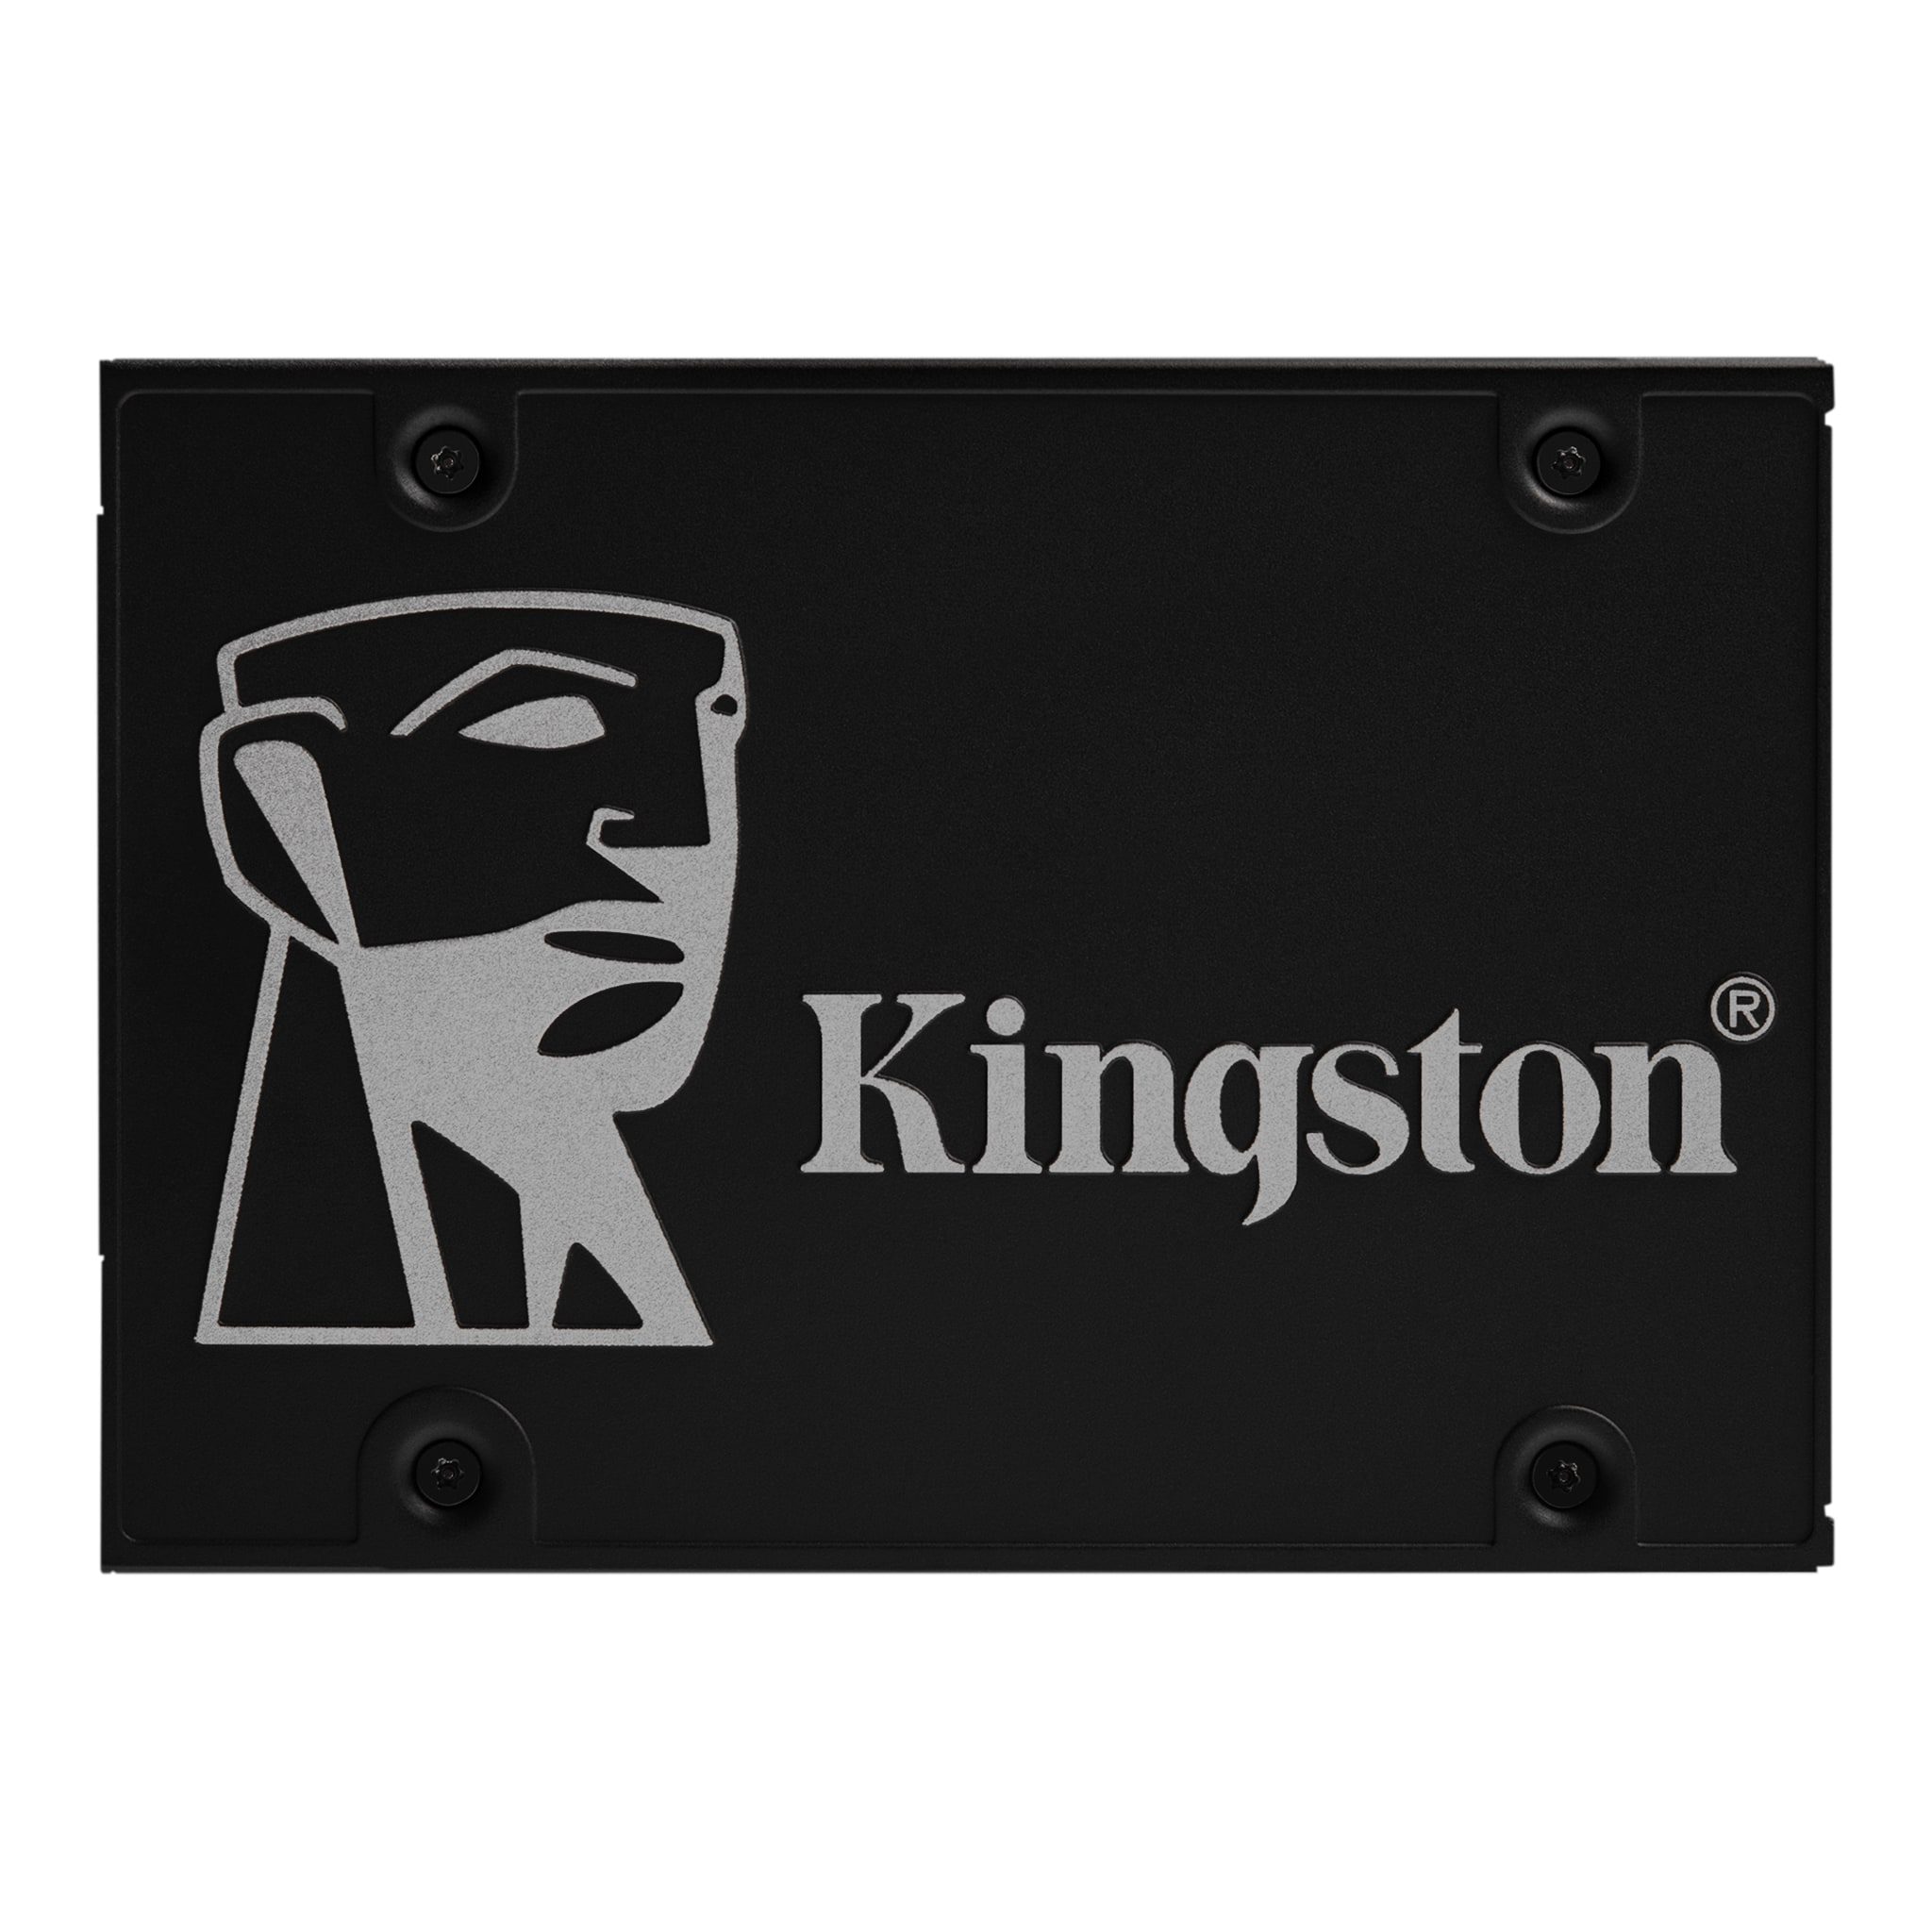 KINGSTON 256GB KC600 SKC600/256 550- 500MB/s SSD SATA-3 Kurumsal Disk